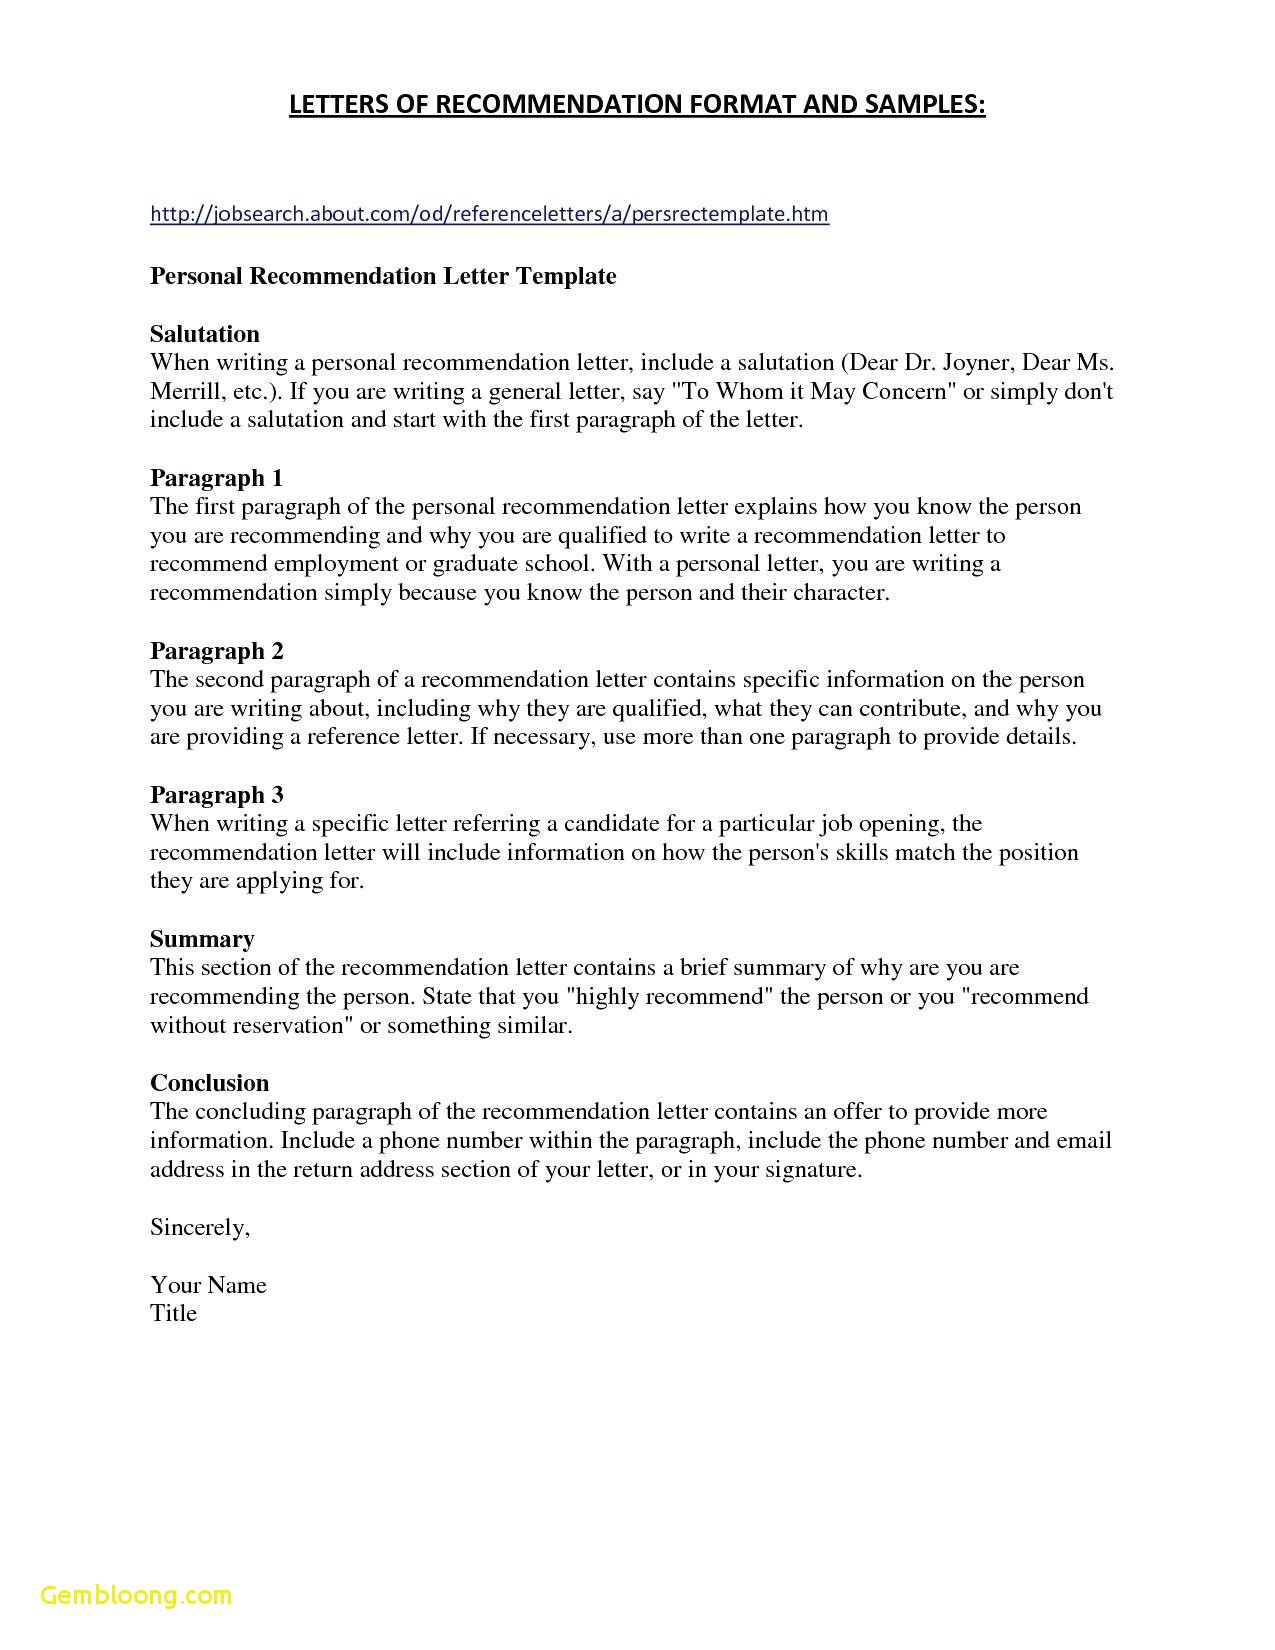 Reference Letter Template Free - Reference Letter format Personal Fresh References for Resume